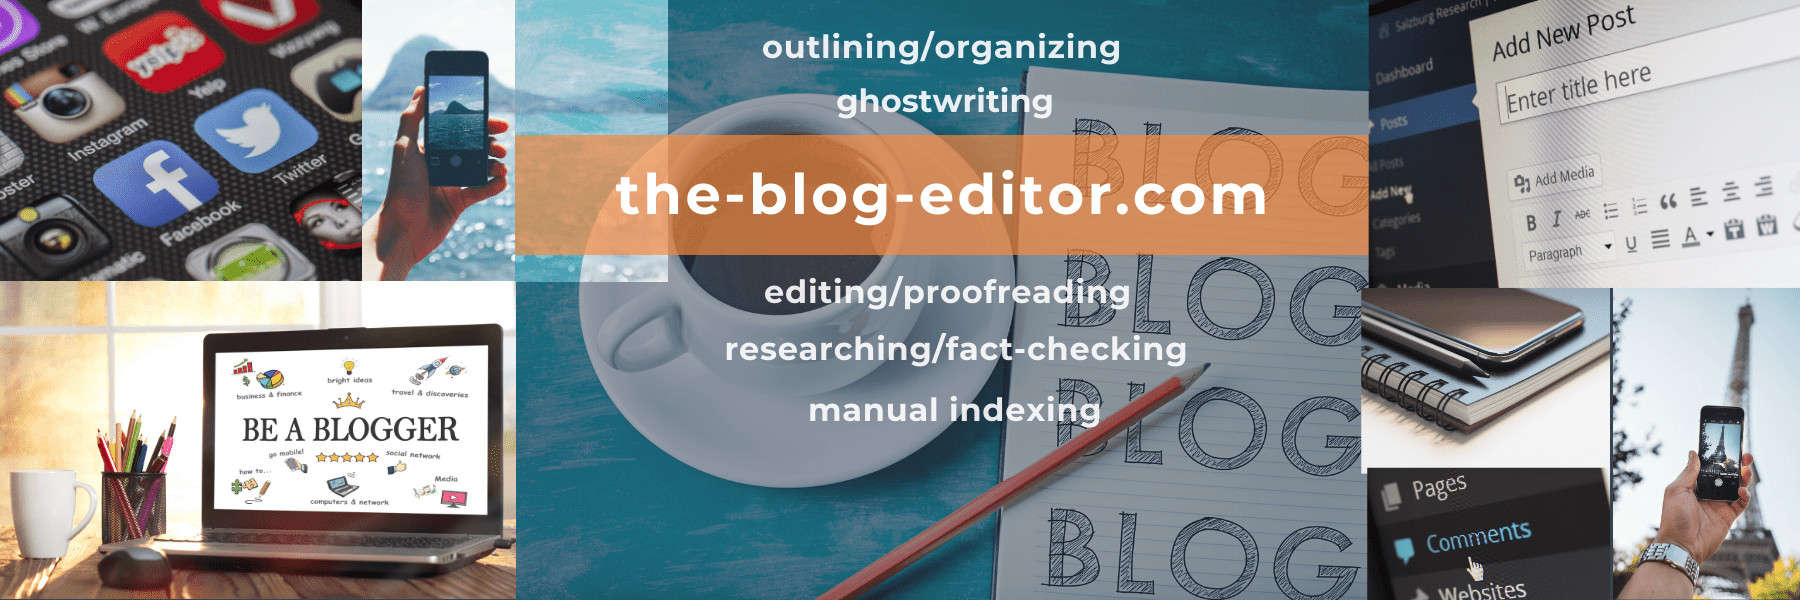 Thank you for visiting the-blog-editor, a division of the-freelance-editor, for help with blogging and social media-related outlining/organizing, ghostwriting, editing/proofreading, researching/fact-checking, and manual indexing.